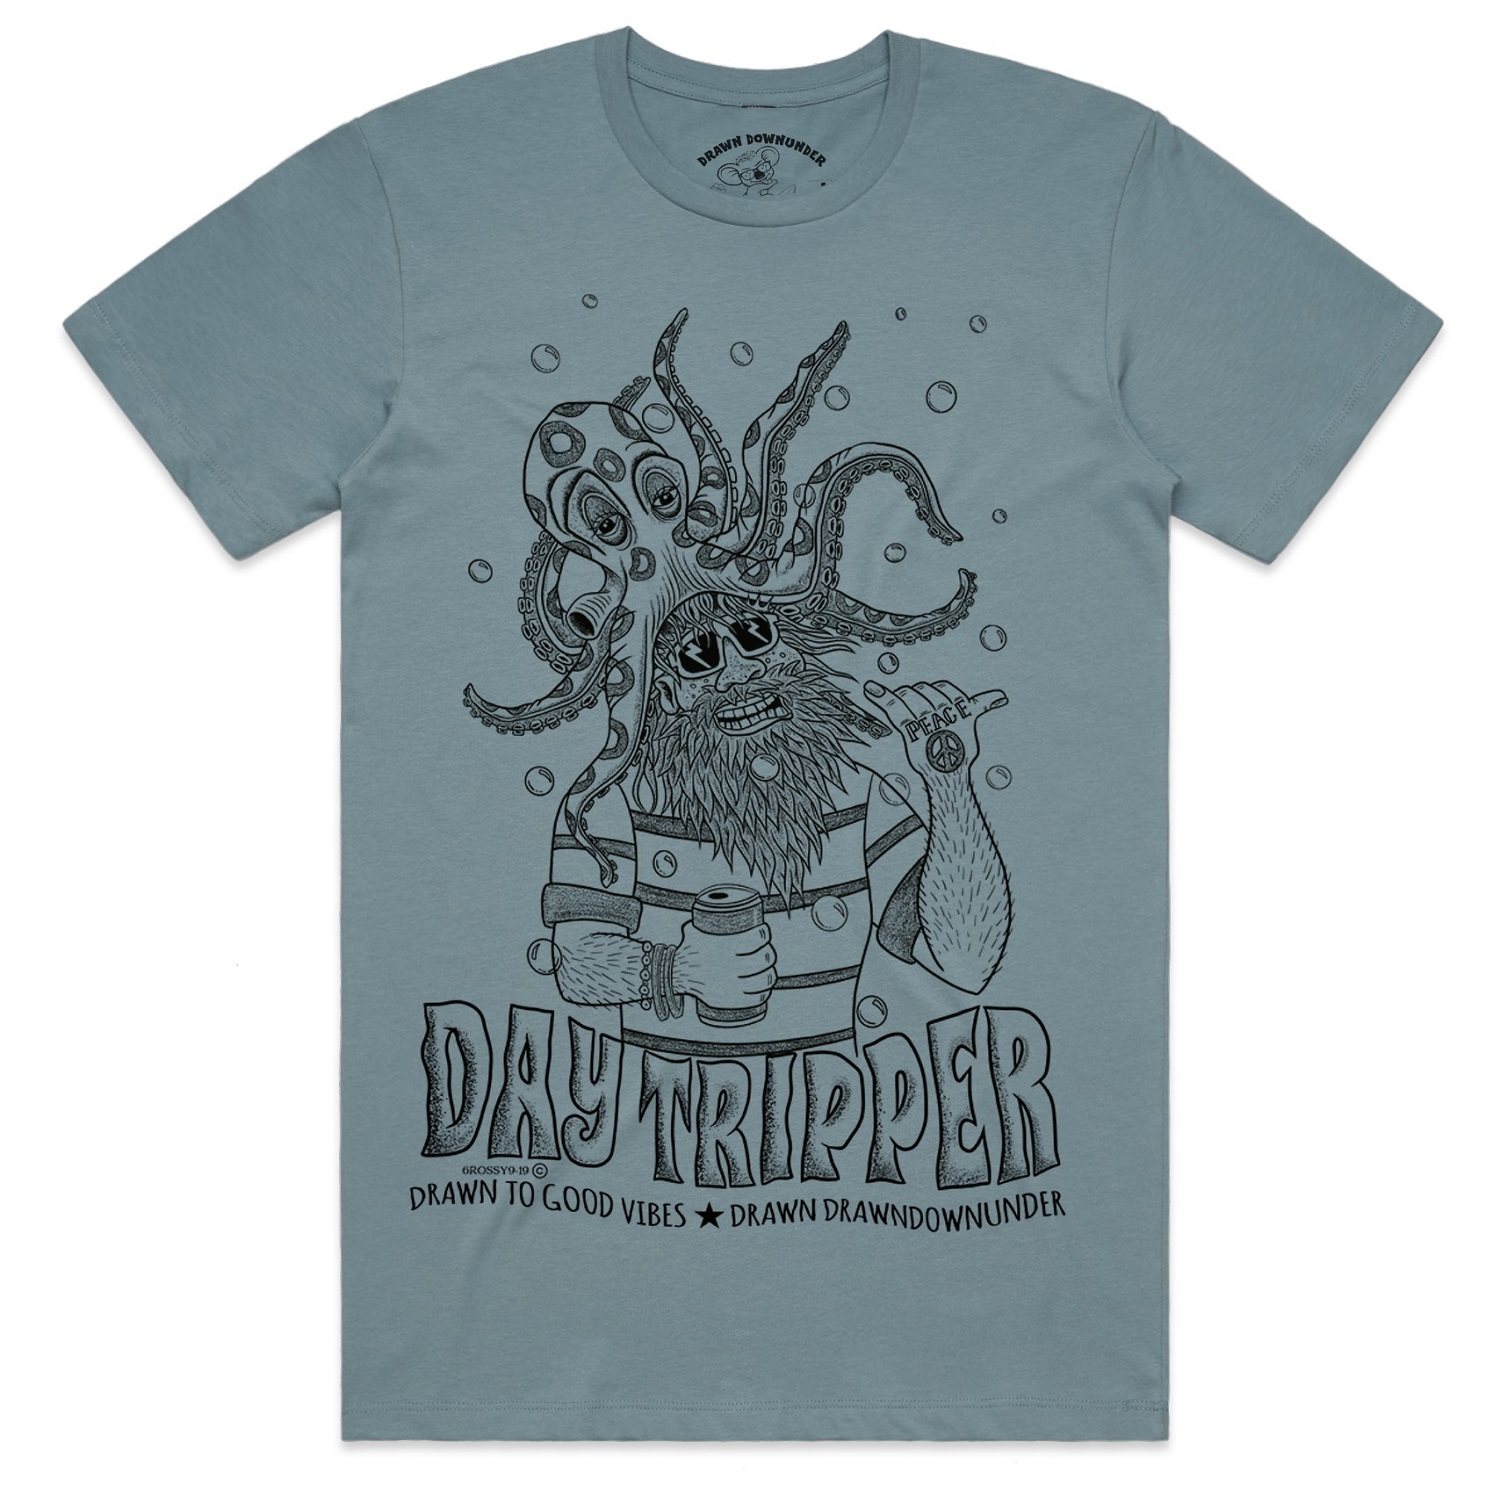 Day Tripper T-Shirt